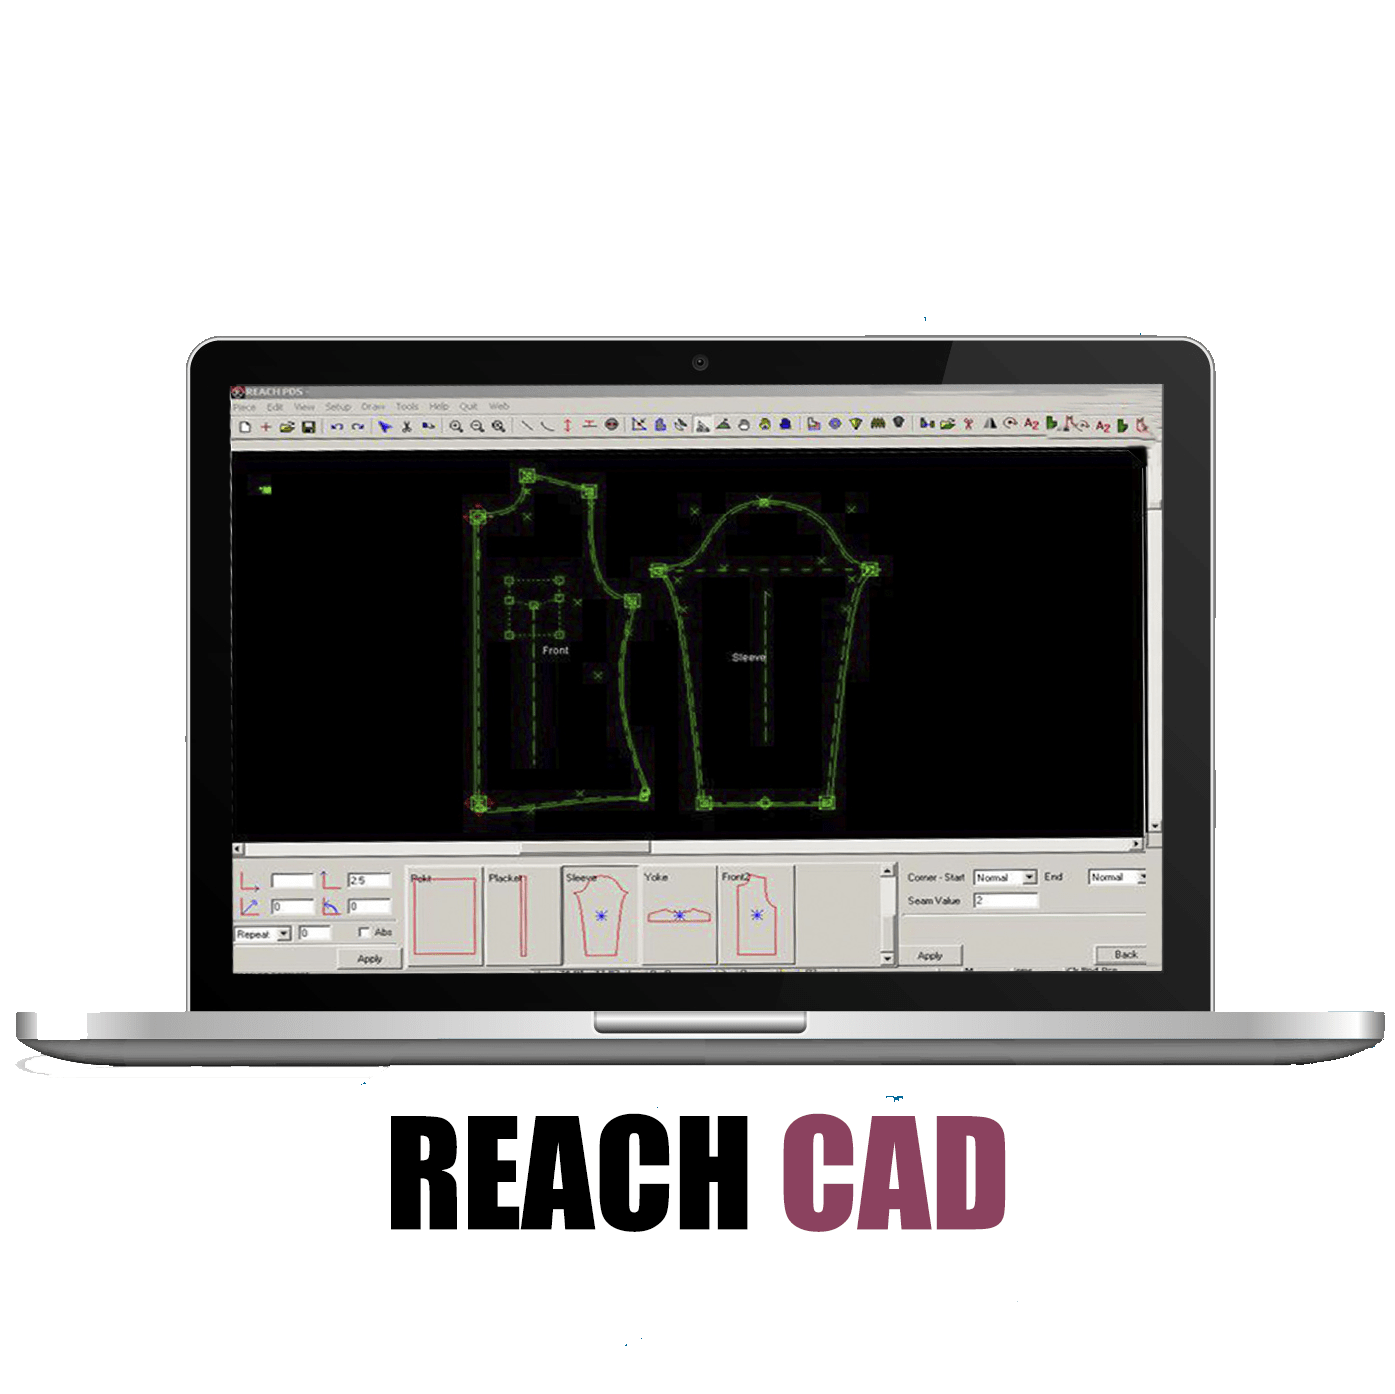 clothing-cad-reach-cad-1